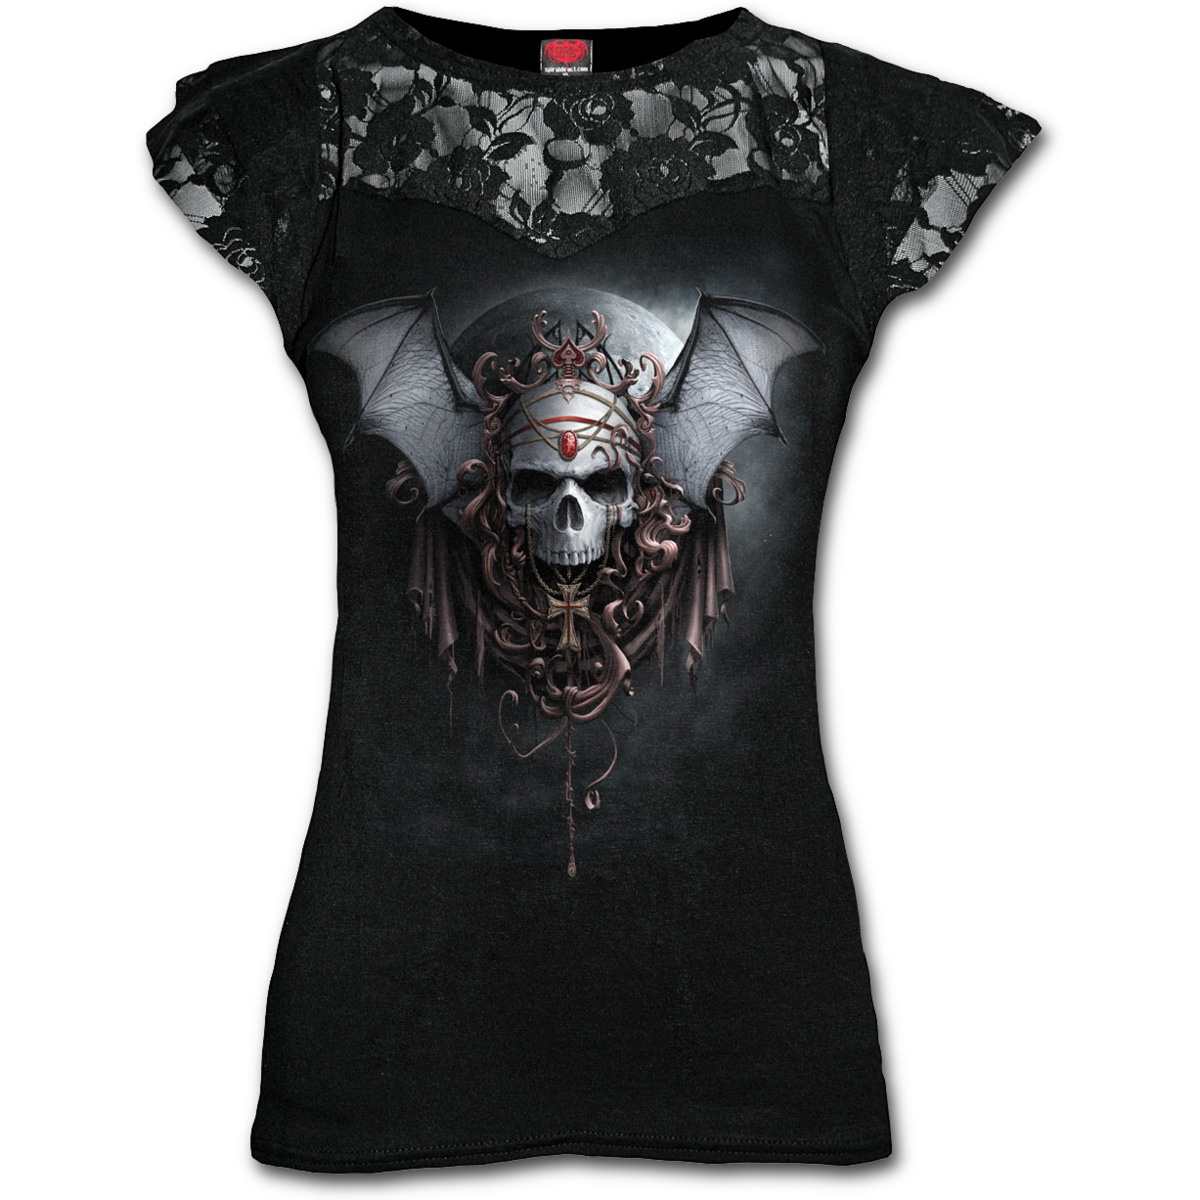 SPIRAL-DIRECT-Ladies-Black-Gothic-GOTH-NIGHTS-Skull-Top-Lace-Bat-All-Sizes thumbnail 3